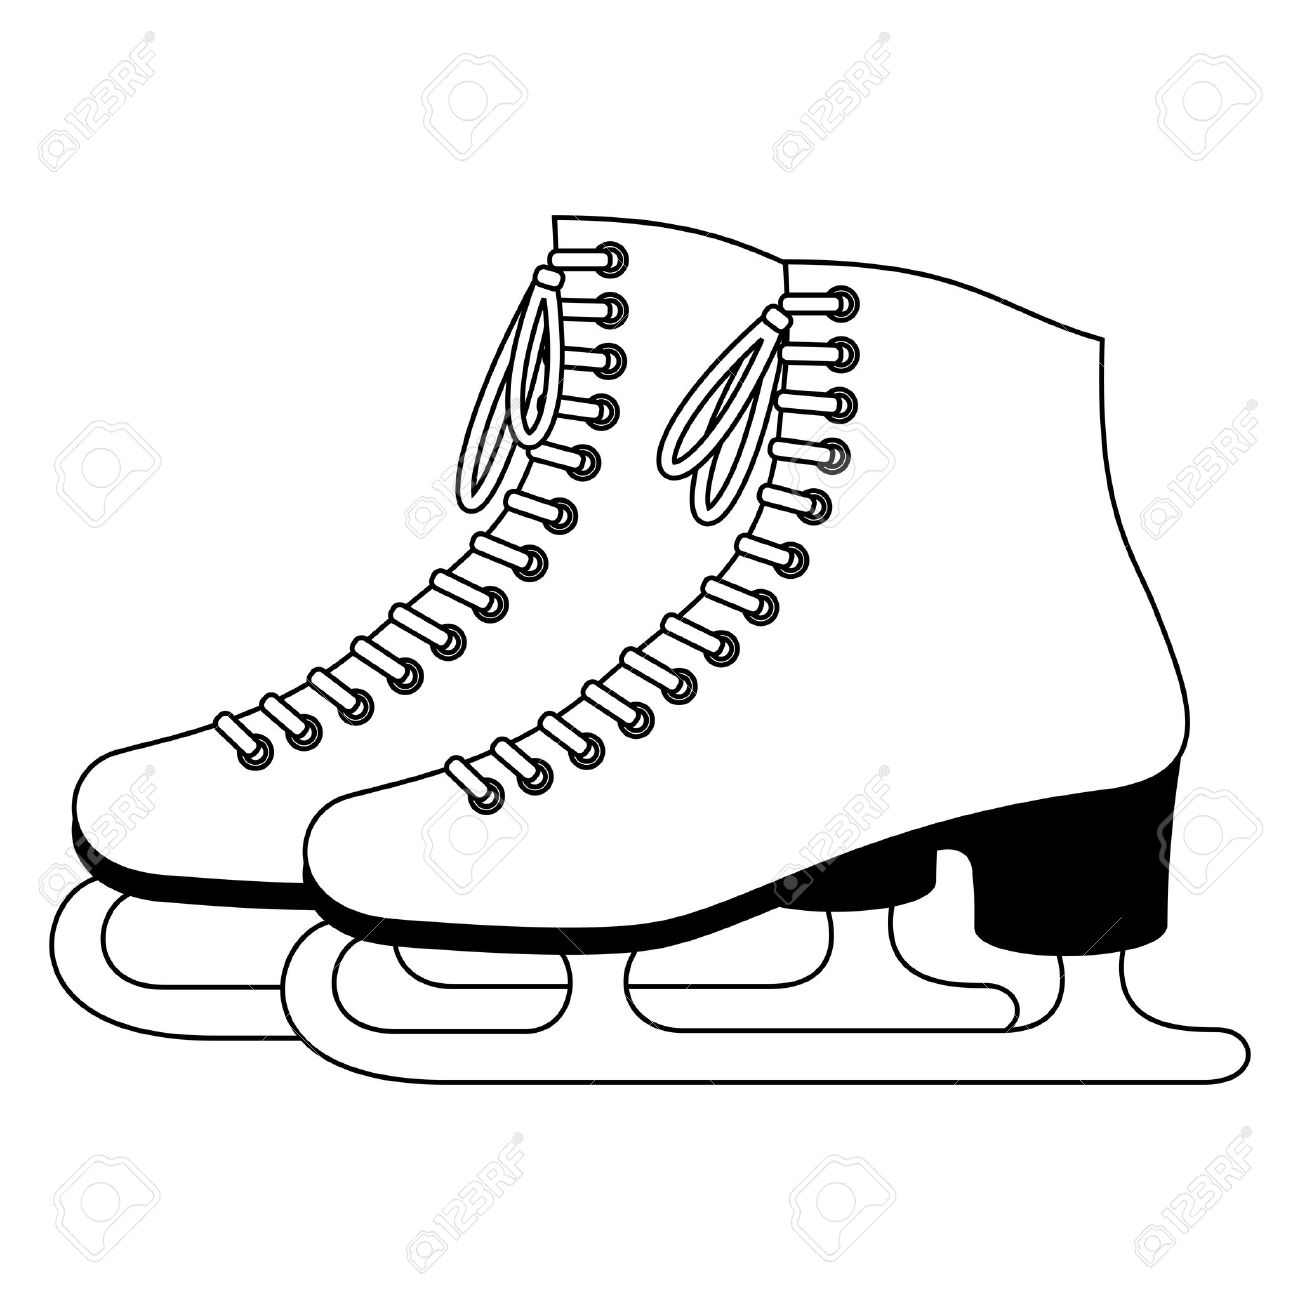 ice skates royalty free cliparts vectors and stock illustration rh 123rf com ice skater clip art